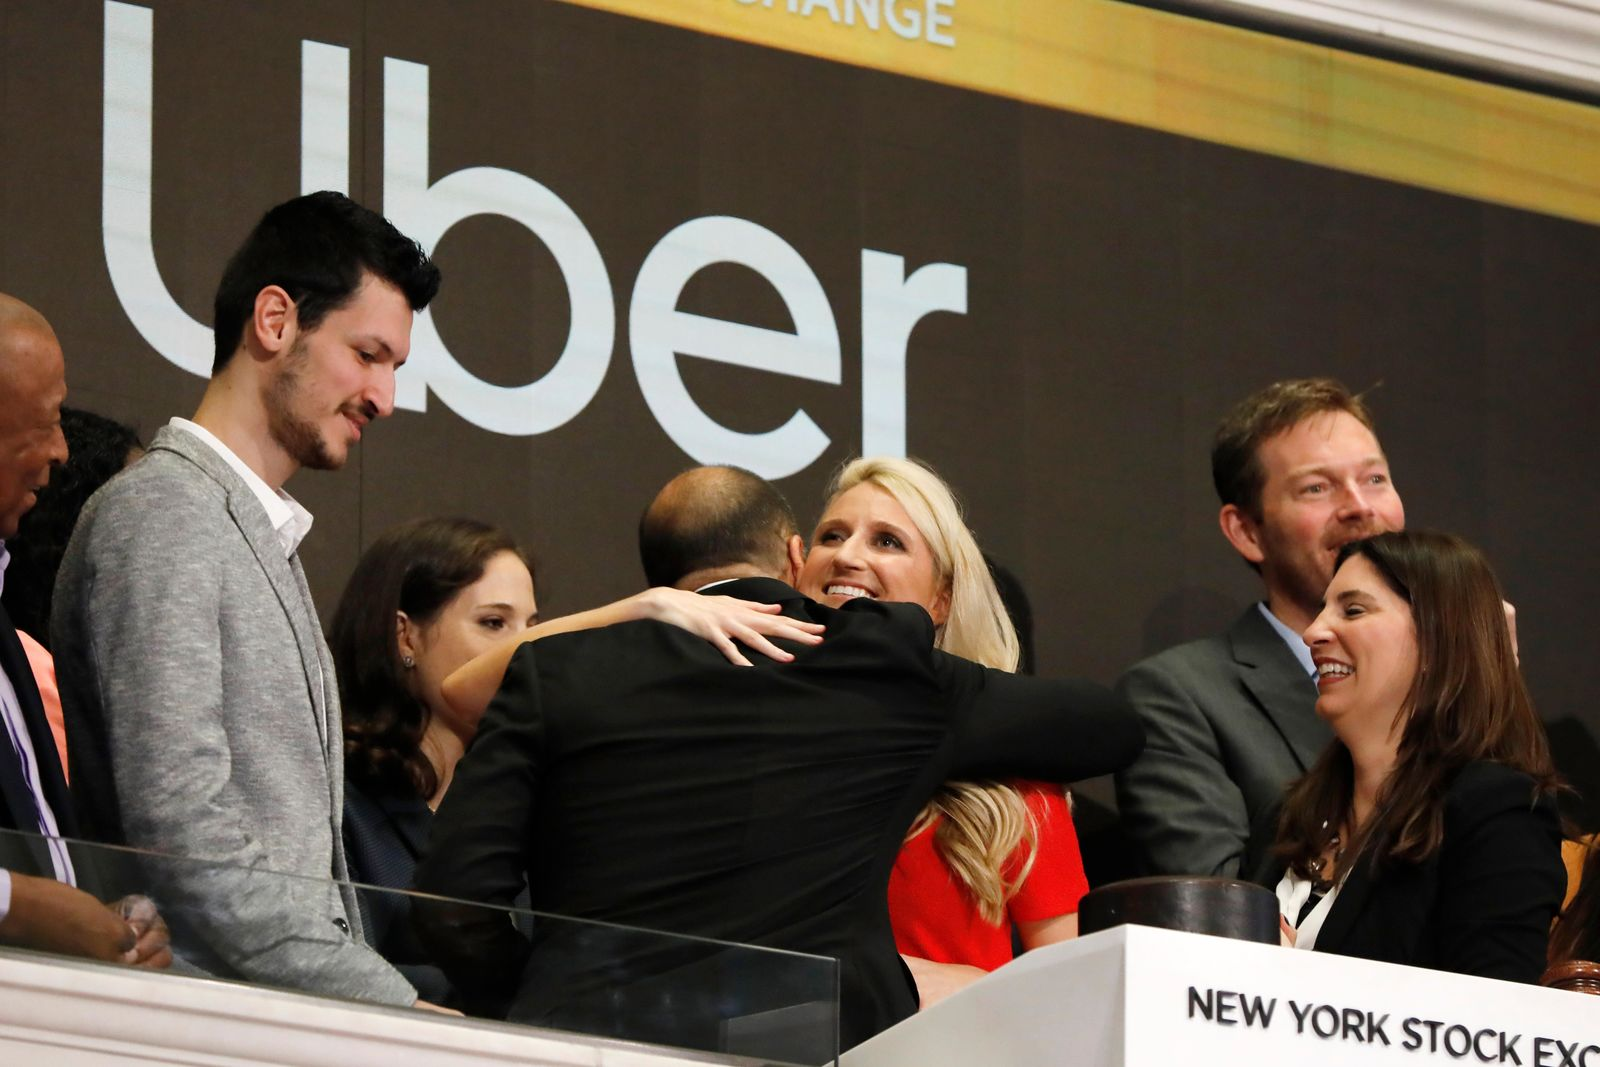 Uber CEO Dara Khosrowshahi, back to camera, hugs company employee Austin Geidt at the opening bell ceremony at the New York Stock Exchange, as his company makes its initial public offering, Friday, May 10, 2019. (AP Photo/Richard Drew)